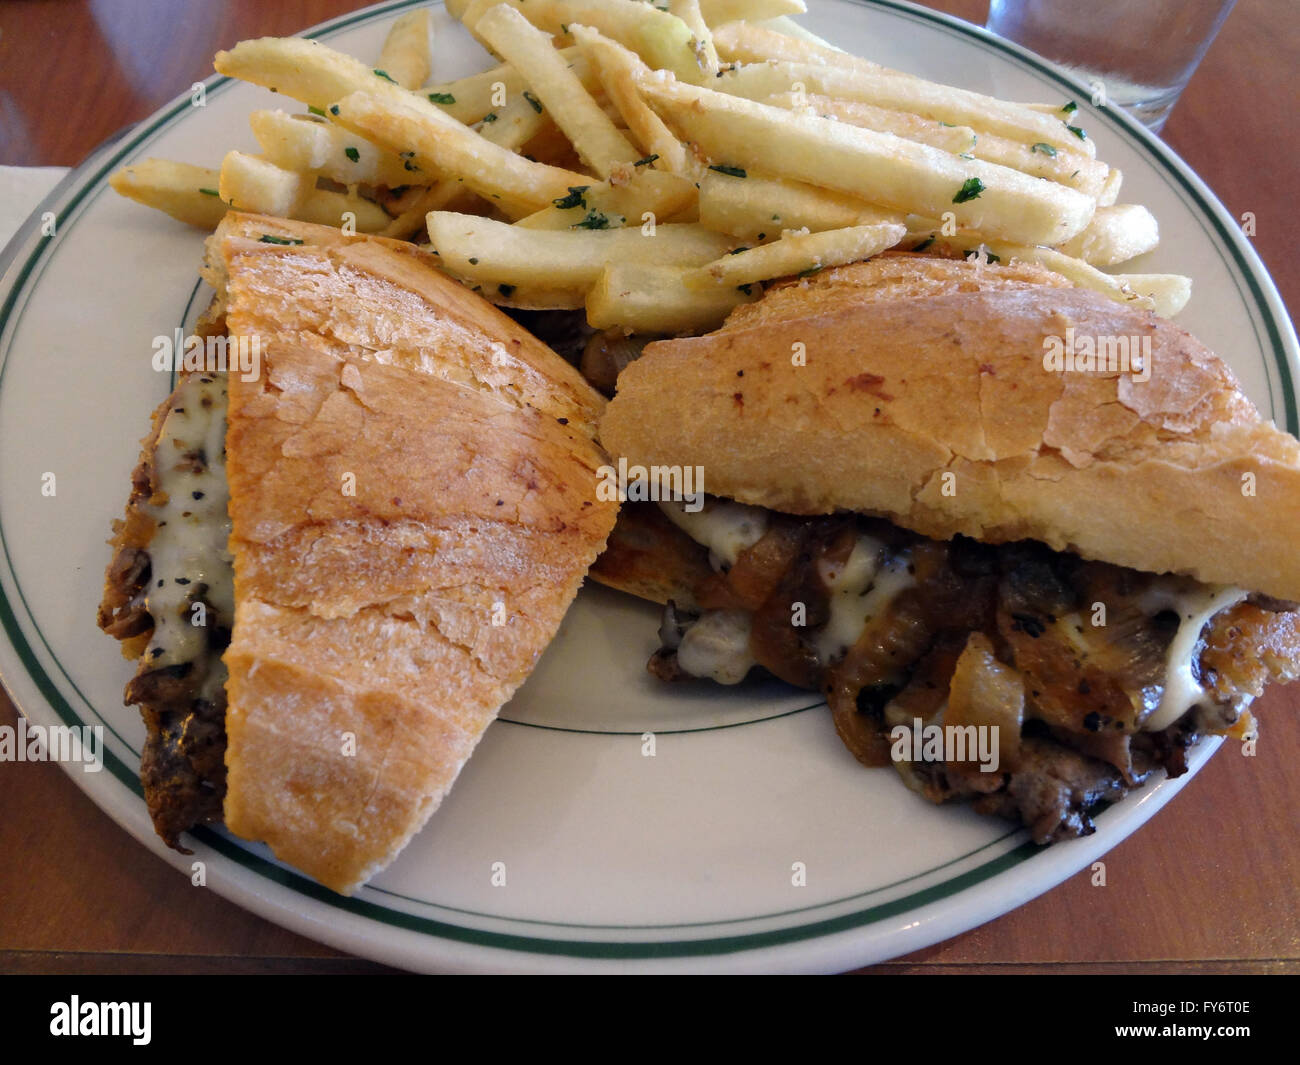 Philly Cheese Steak Style Sandwich And French Fries On A White Plate Stock Photo Alamy